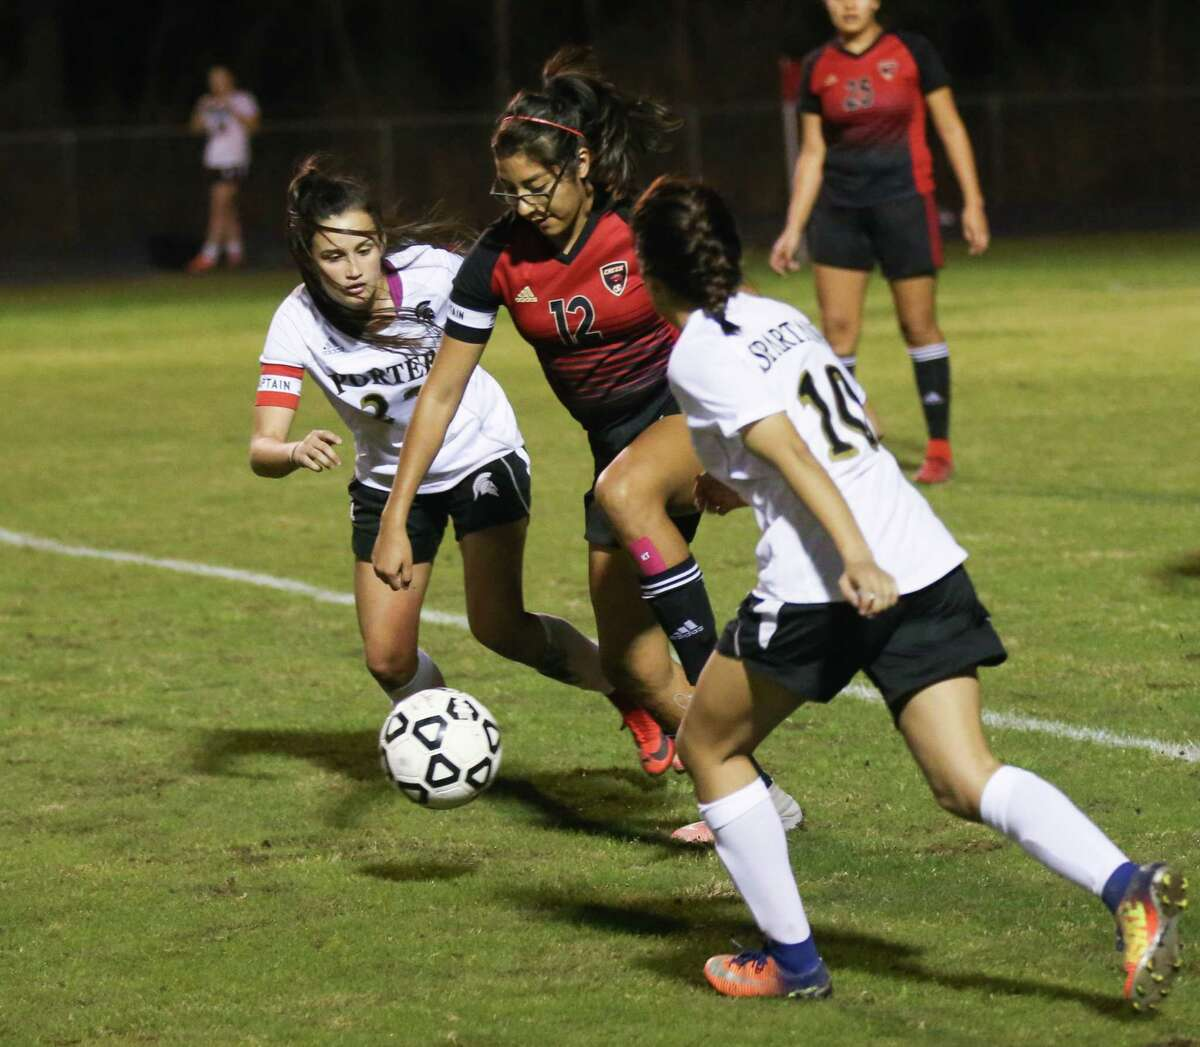 Caney Creek's Emily Carrisales (12) controls the ball as PorterÂ?'s Kelly Rodriguez (22) and Irma Hernandez (10) defend during the girls soccer game on Friday, Feb. 16, 2018, at Porter High School. (Michael Minasi / Houston Chronicle)